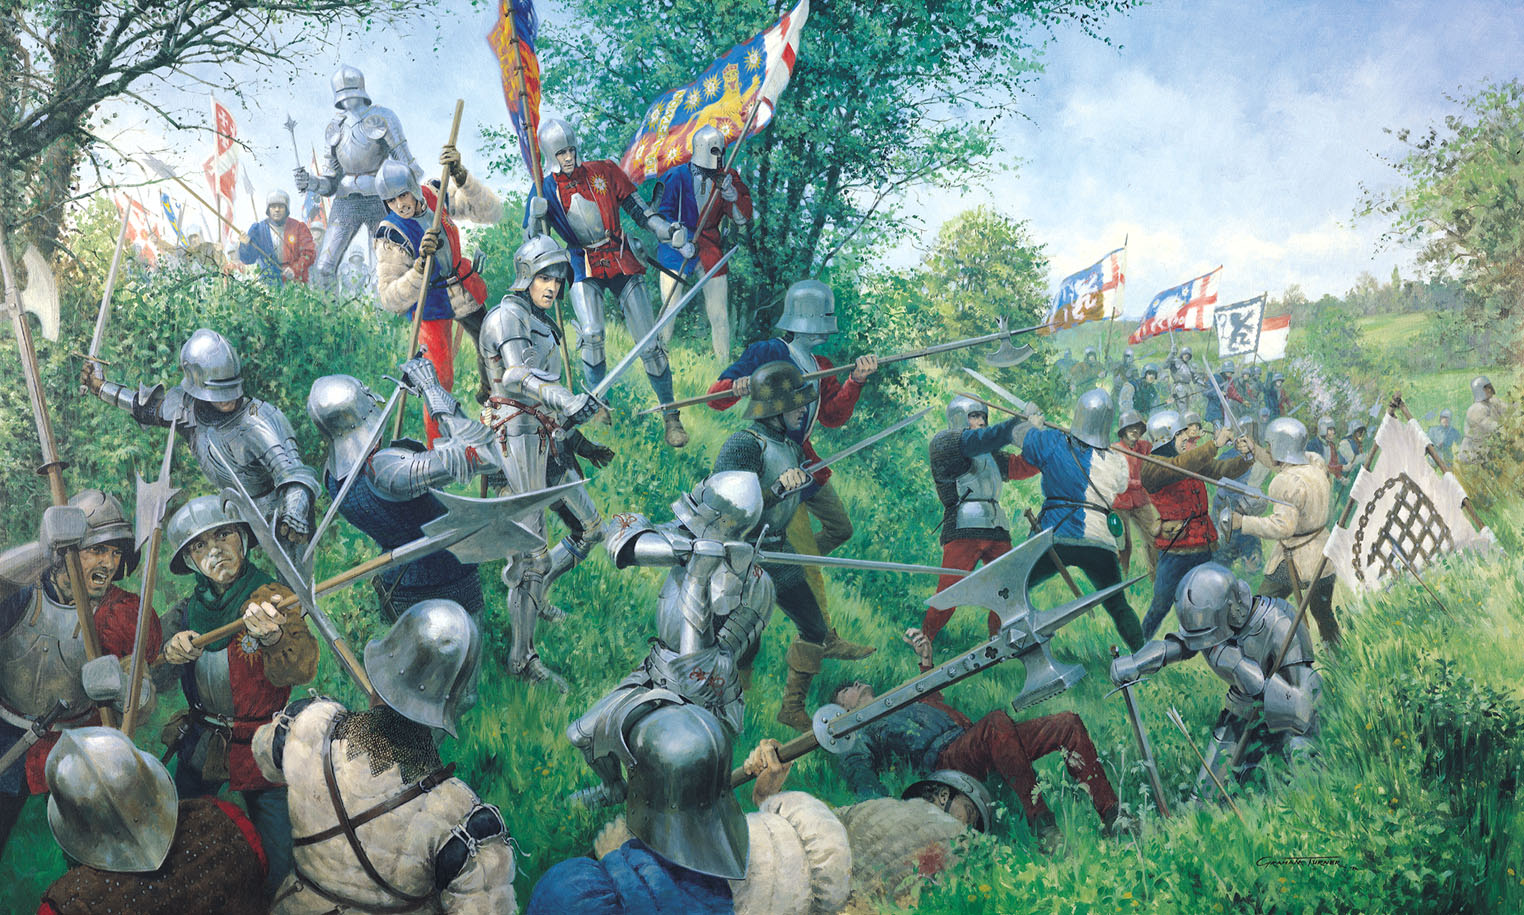 Modern depiction of the Battle of Tewkesbury